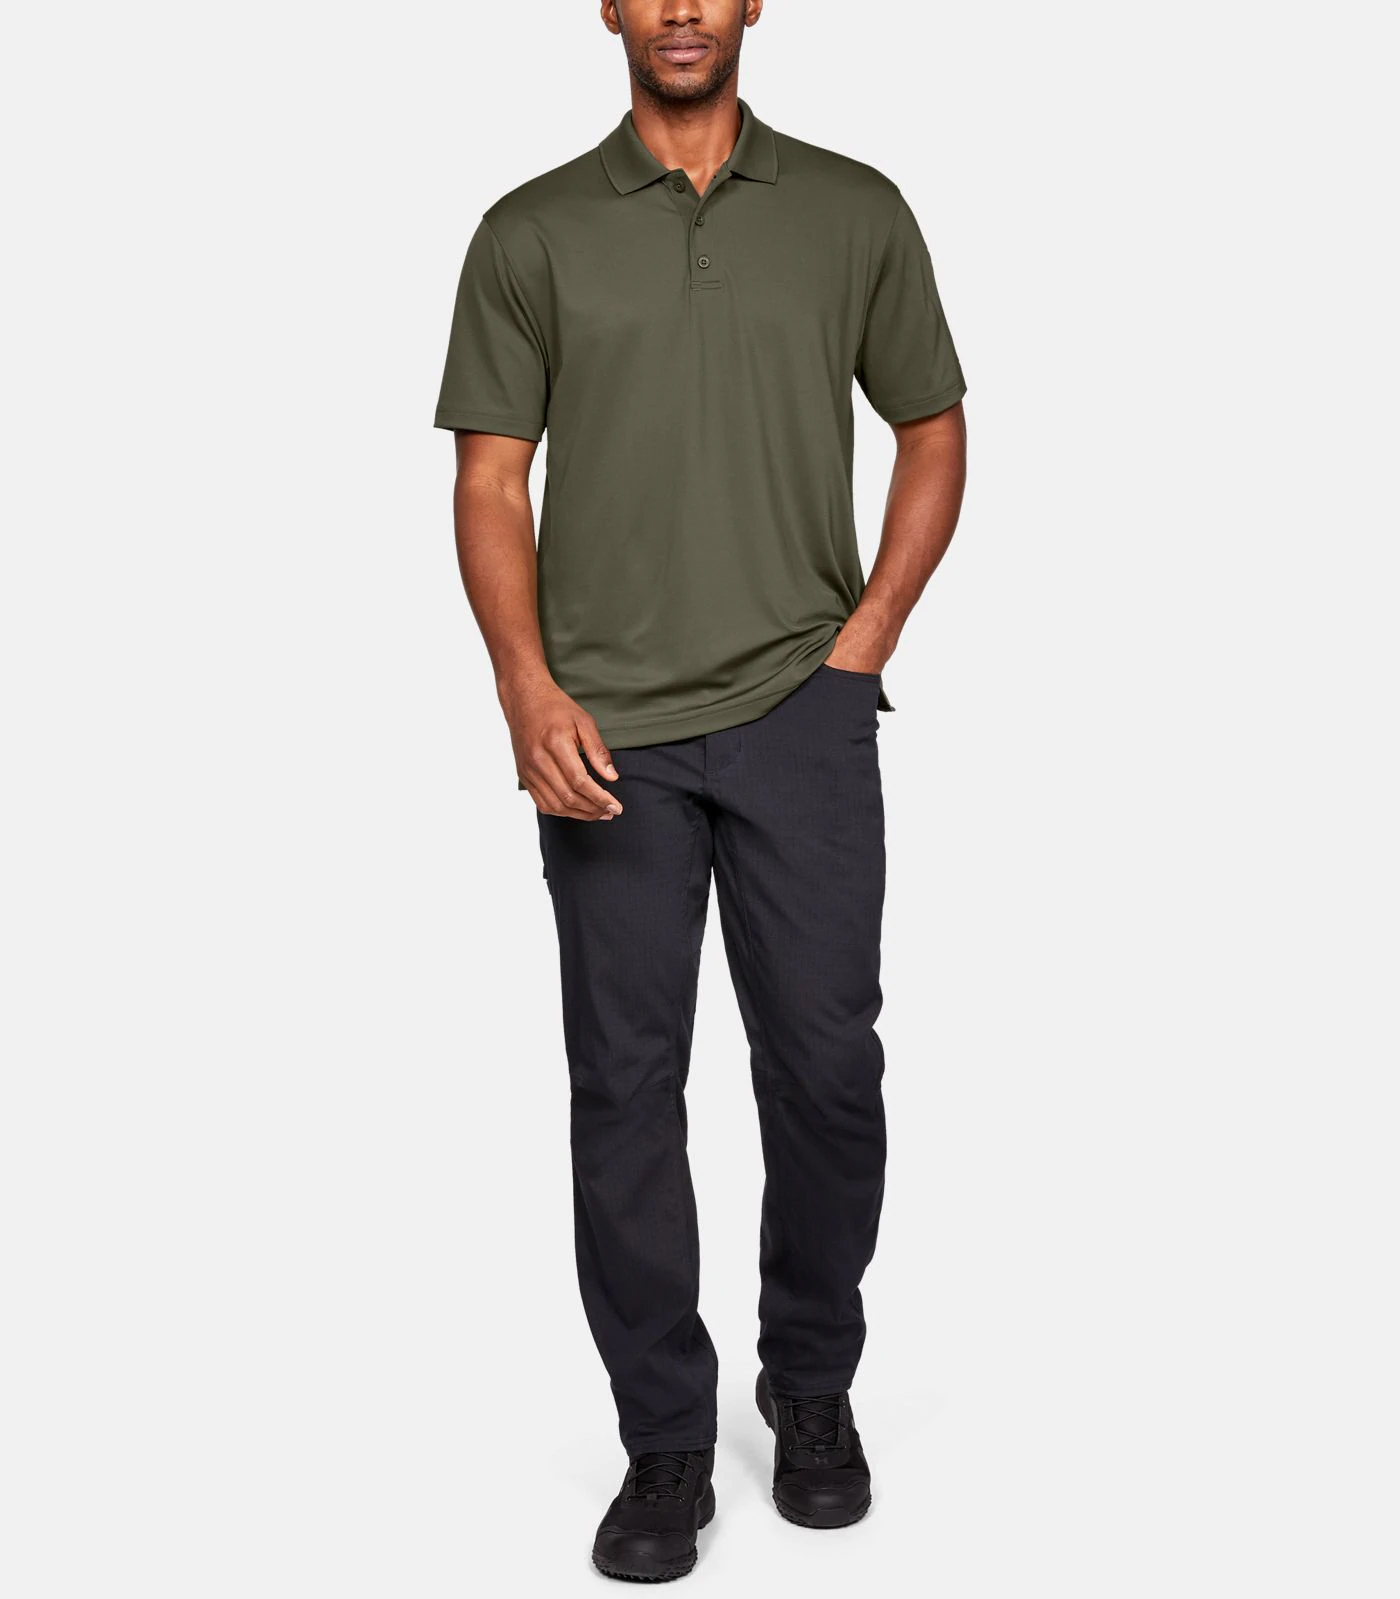 MENS_POLO_TacPerformance-SS_UAR1279759390_06